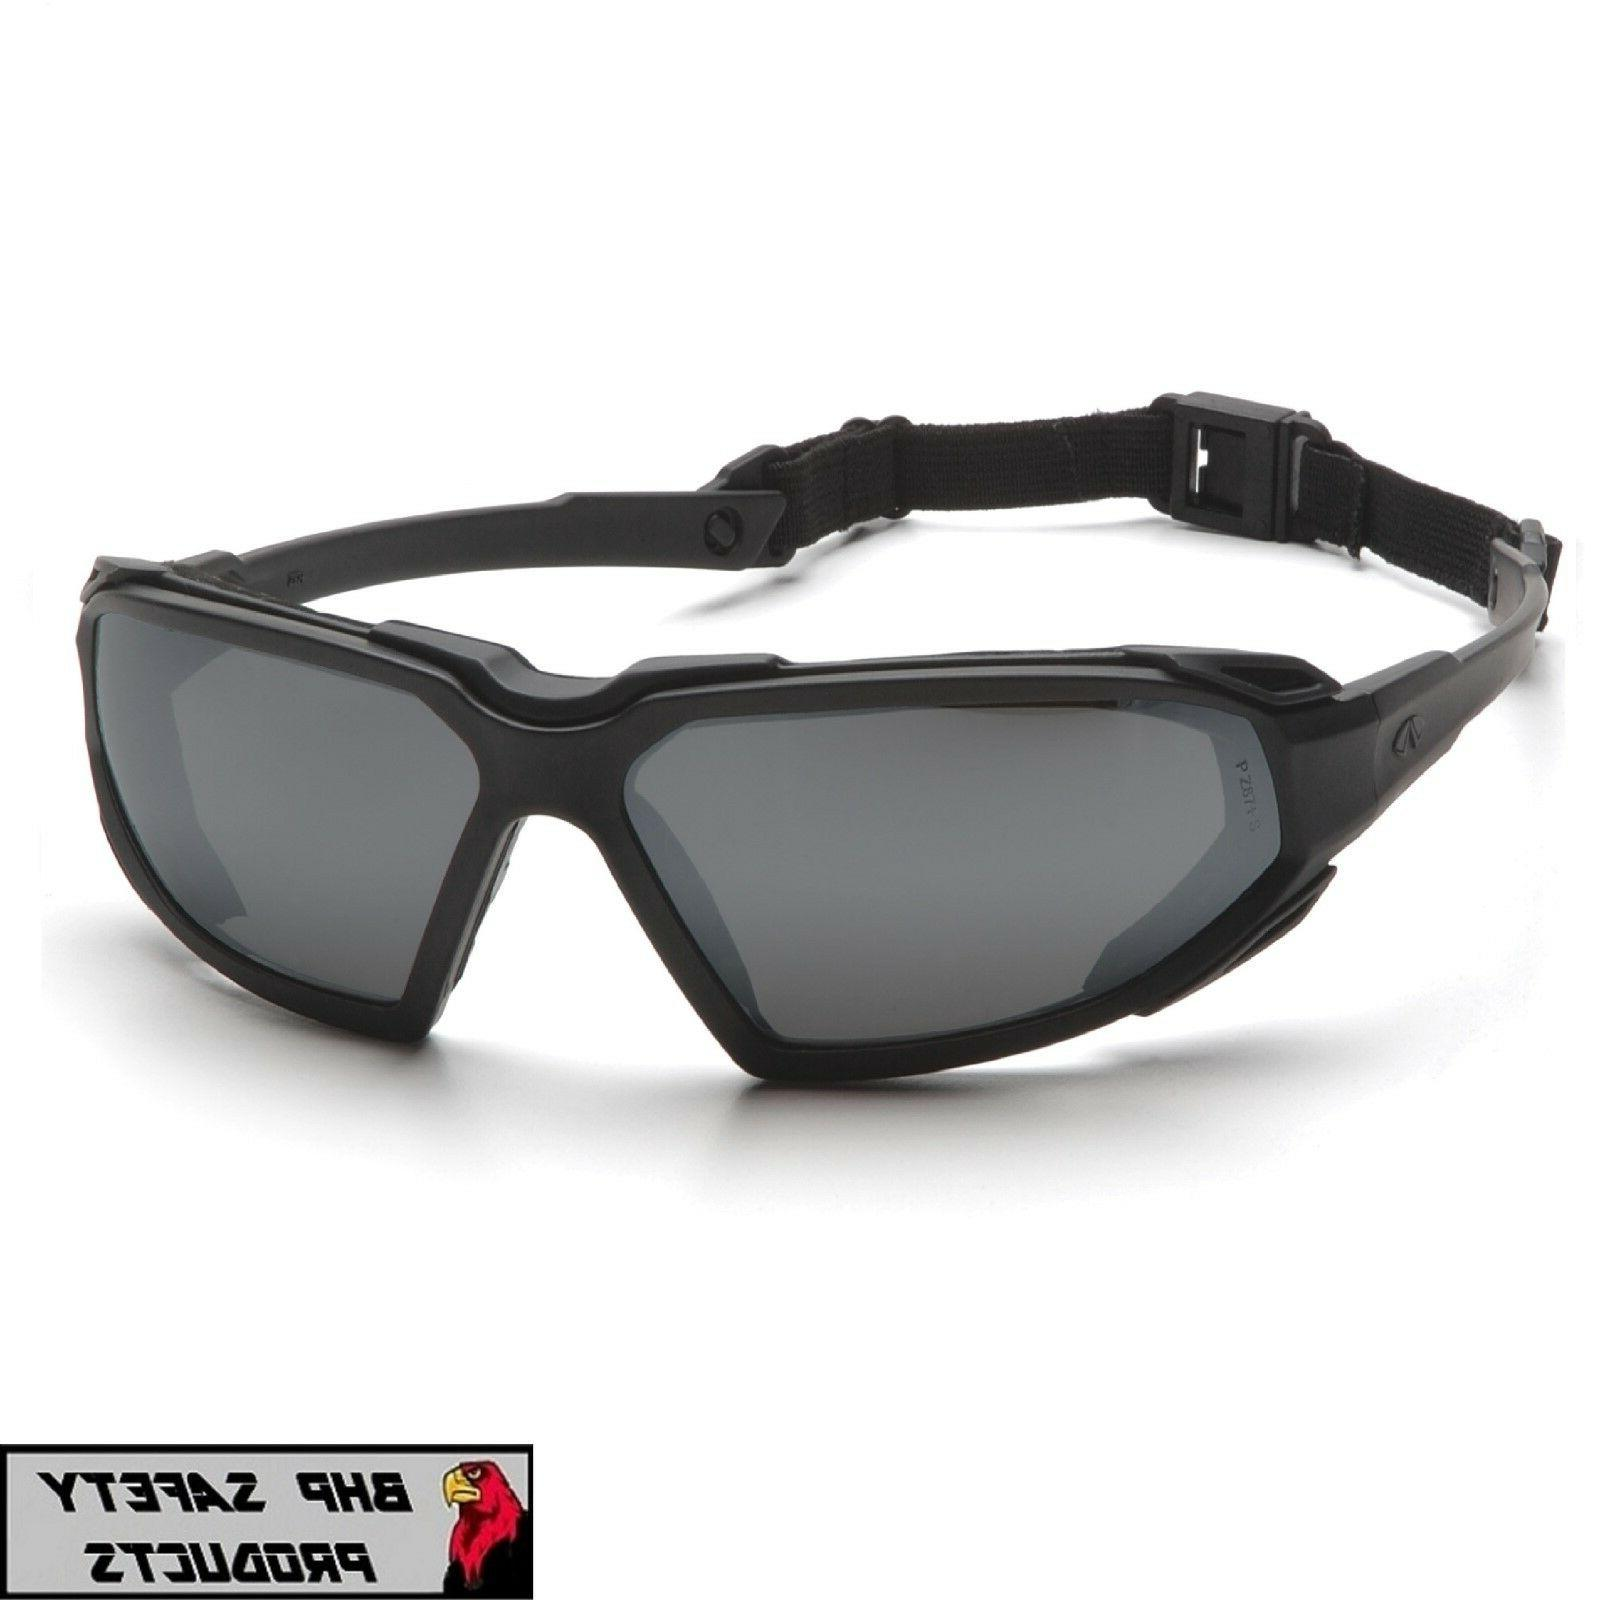 PYRAMEX HIGHLANDER SAFETY GLASSES GRAY ANTI-FOG LENS WORK SU